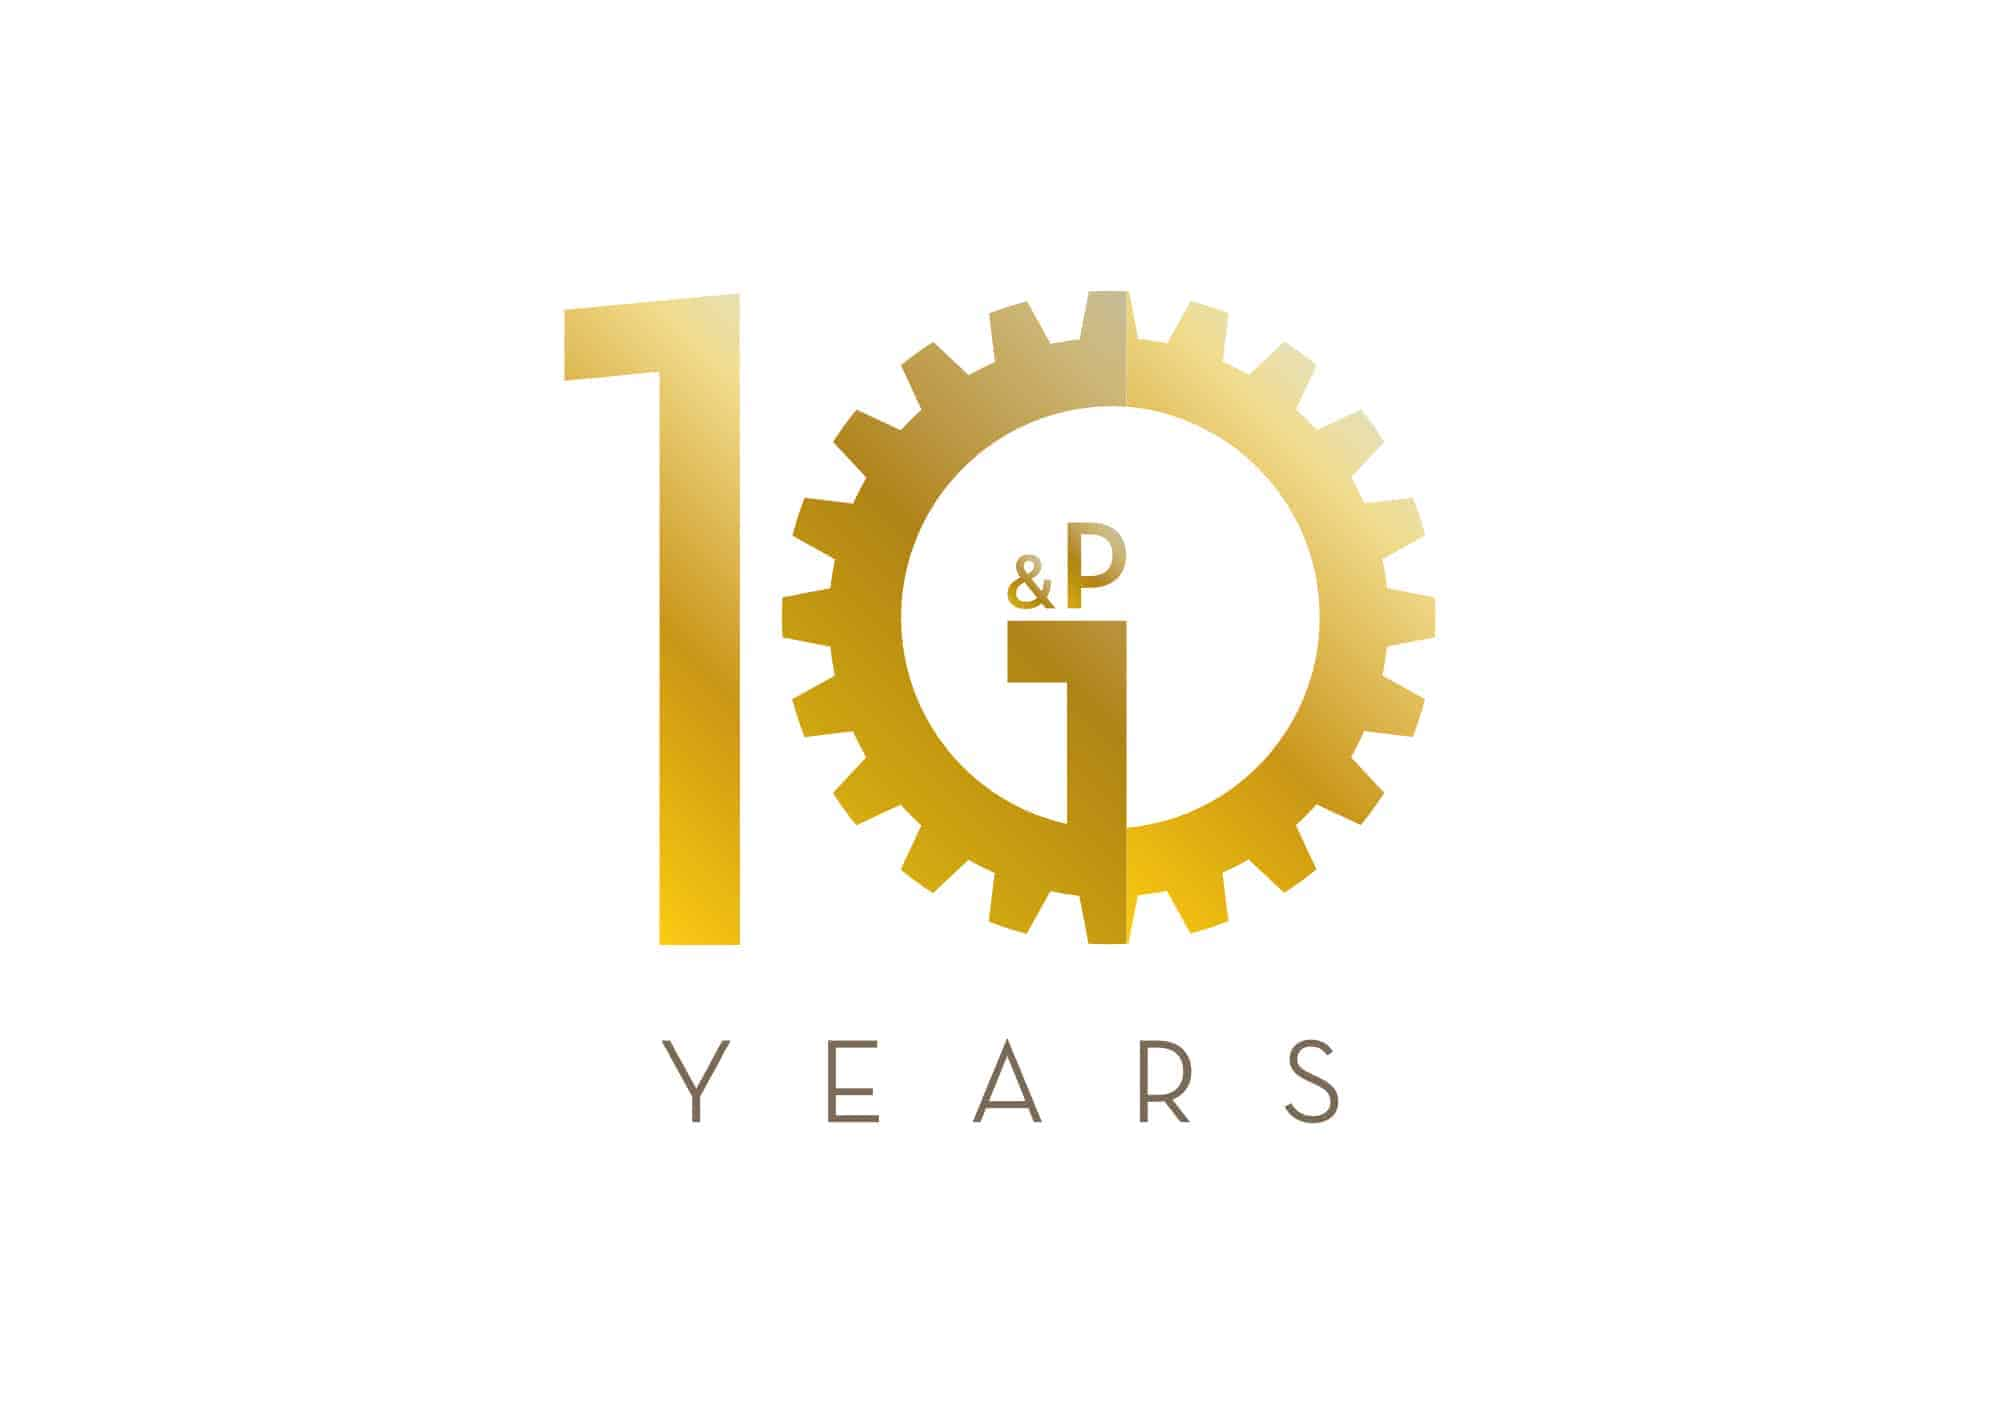 2008-2018: celebrating our 10-year birthday with many new initiatives